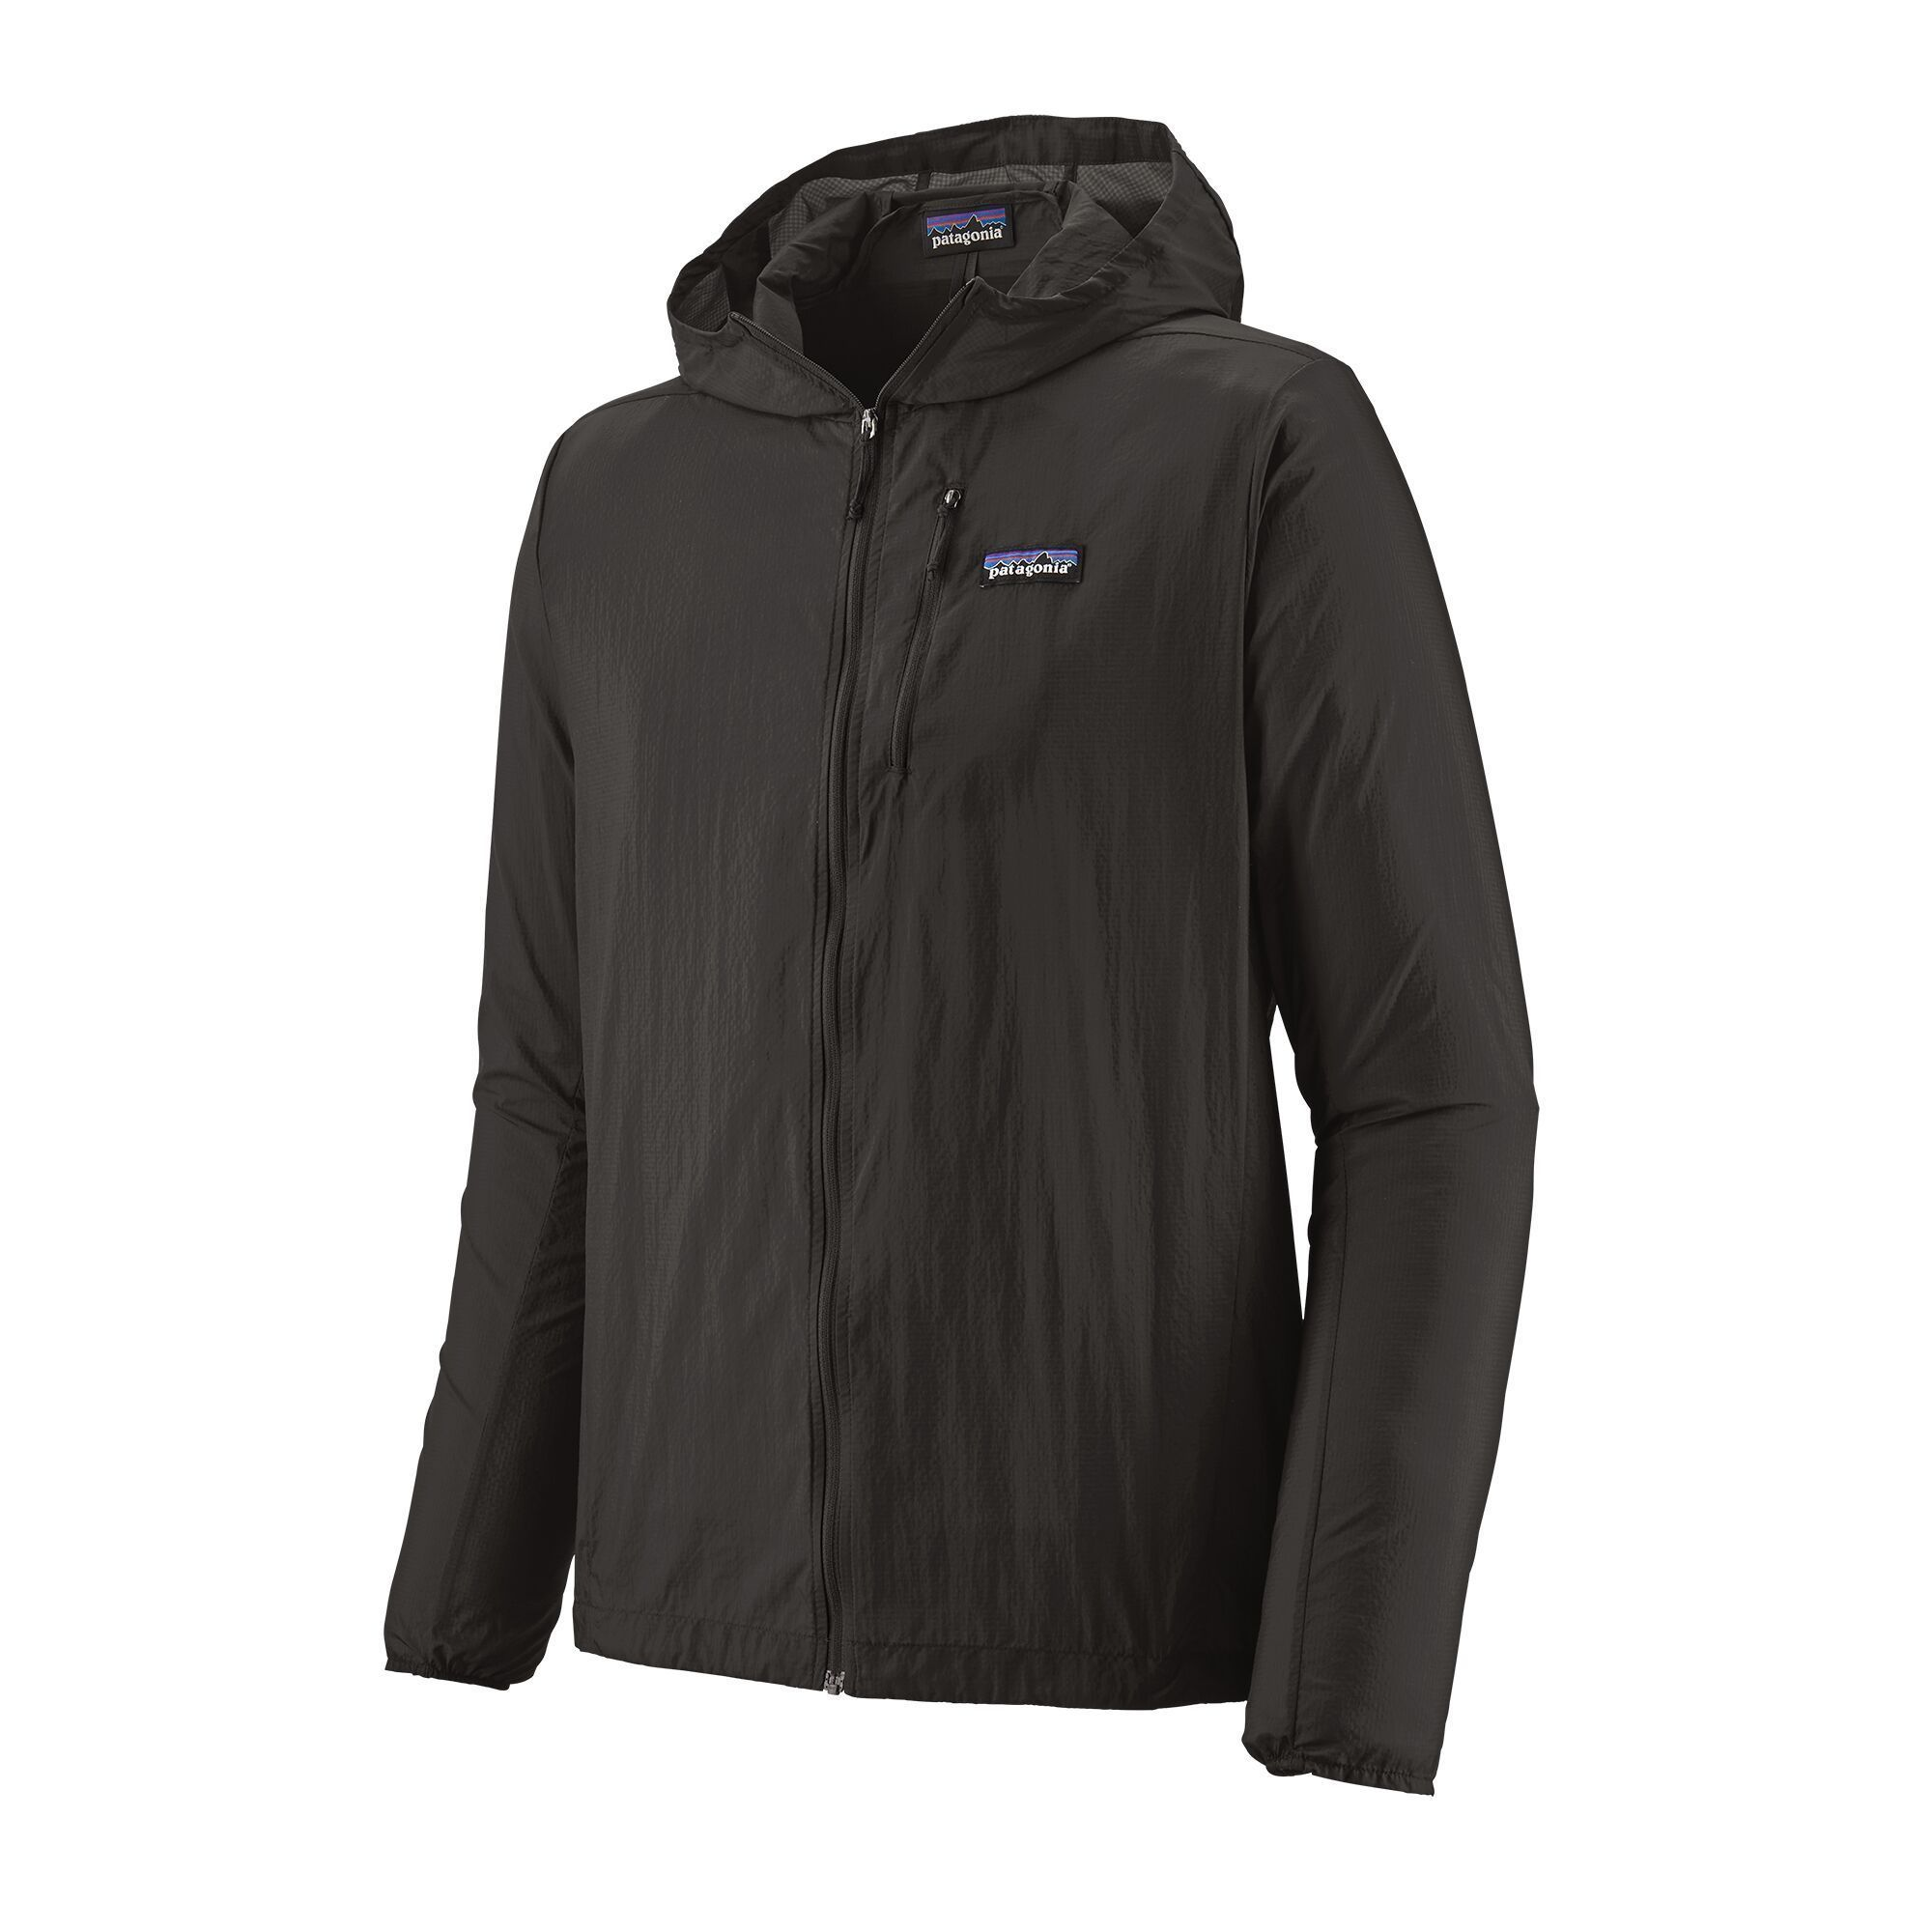 Patagonia - M's Houdini® Jacket - 100% Recycled Nylon - Weekendbee - sustainable sportswear